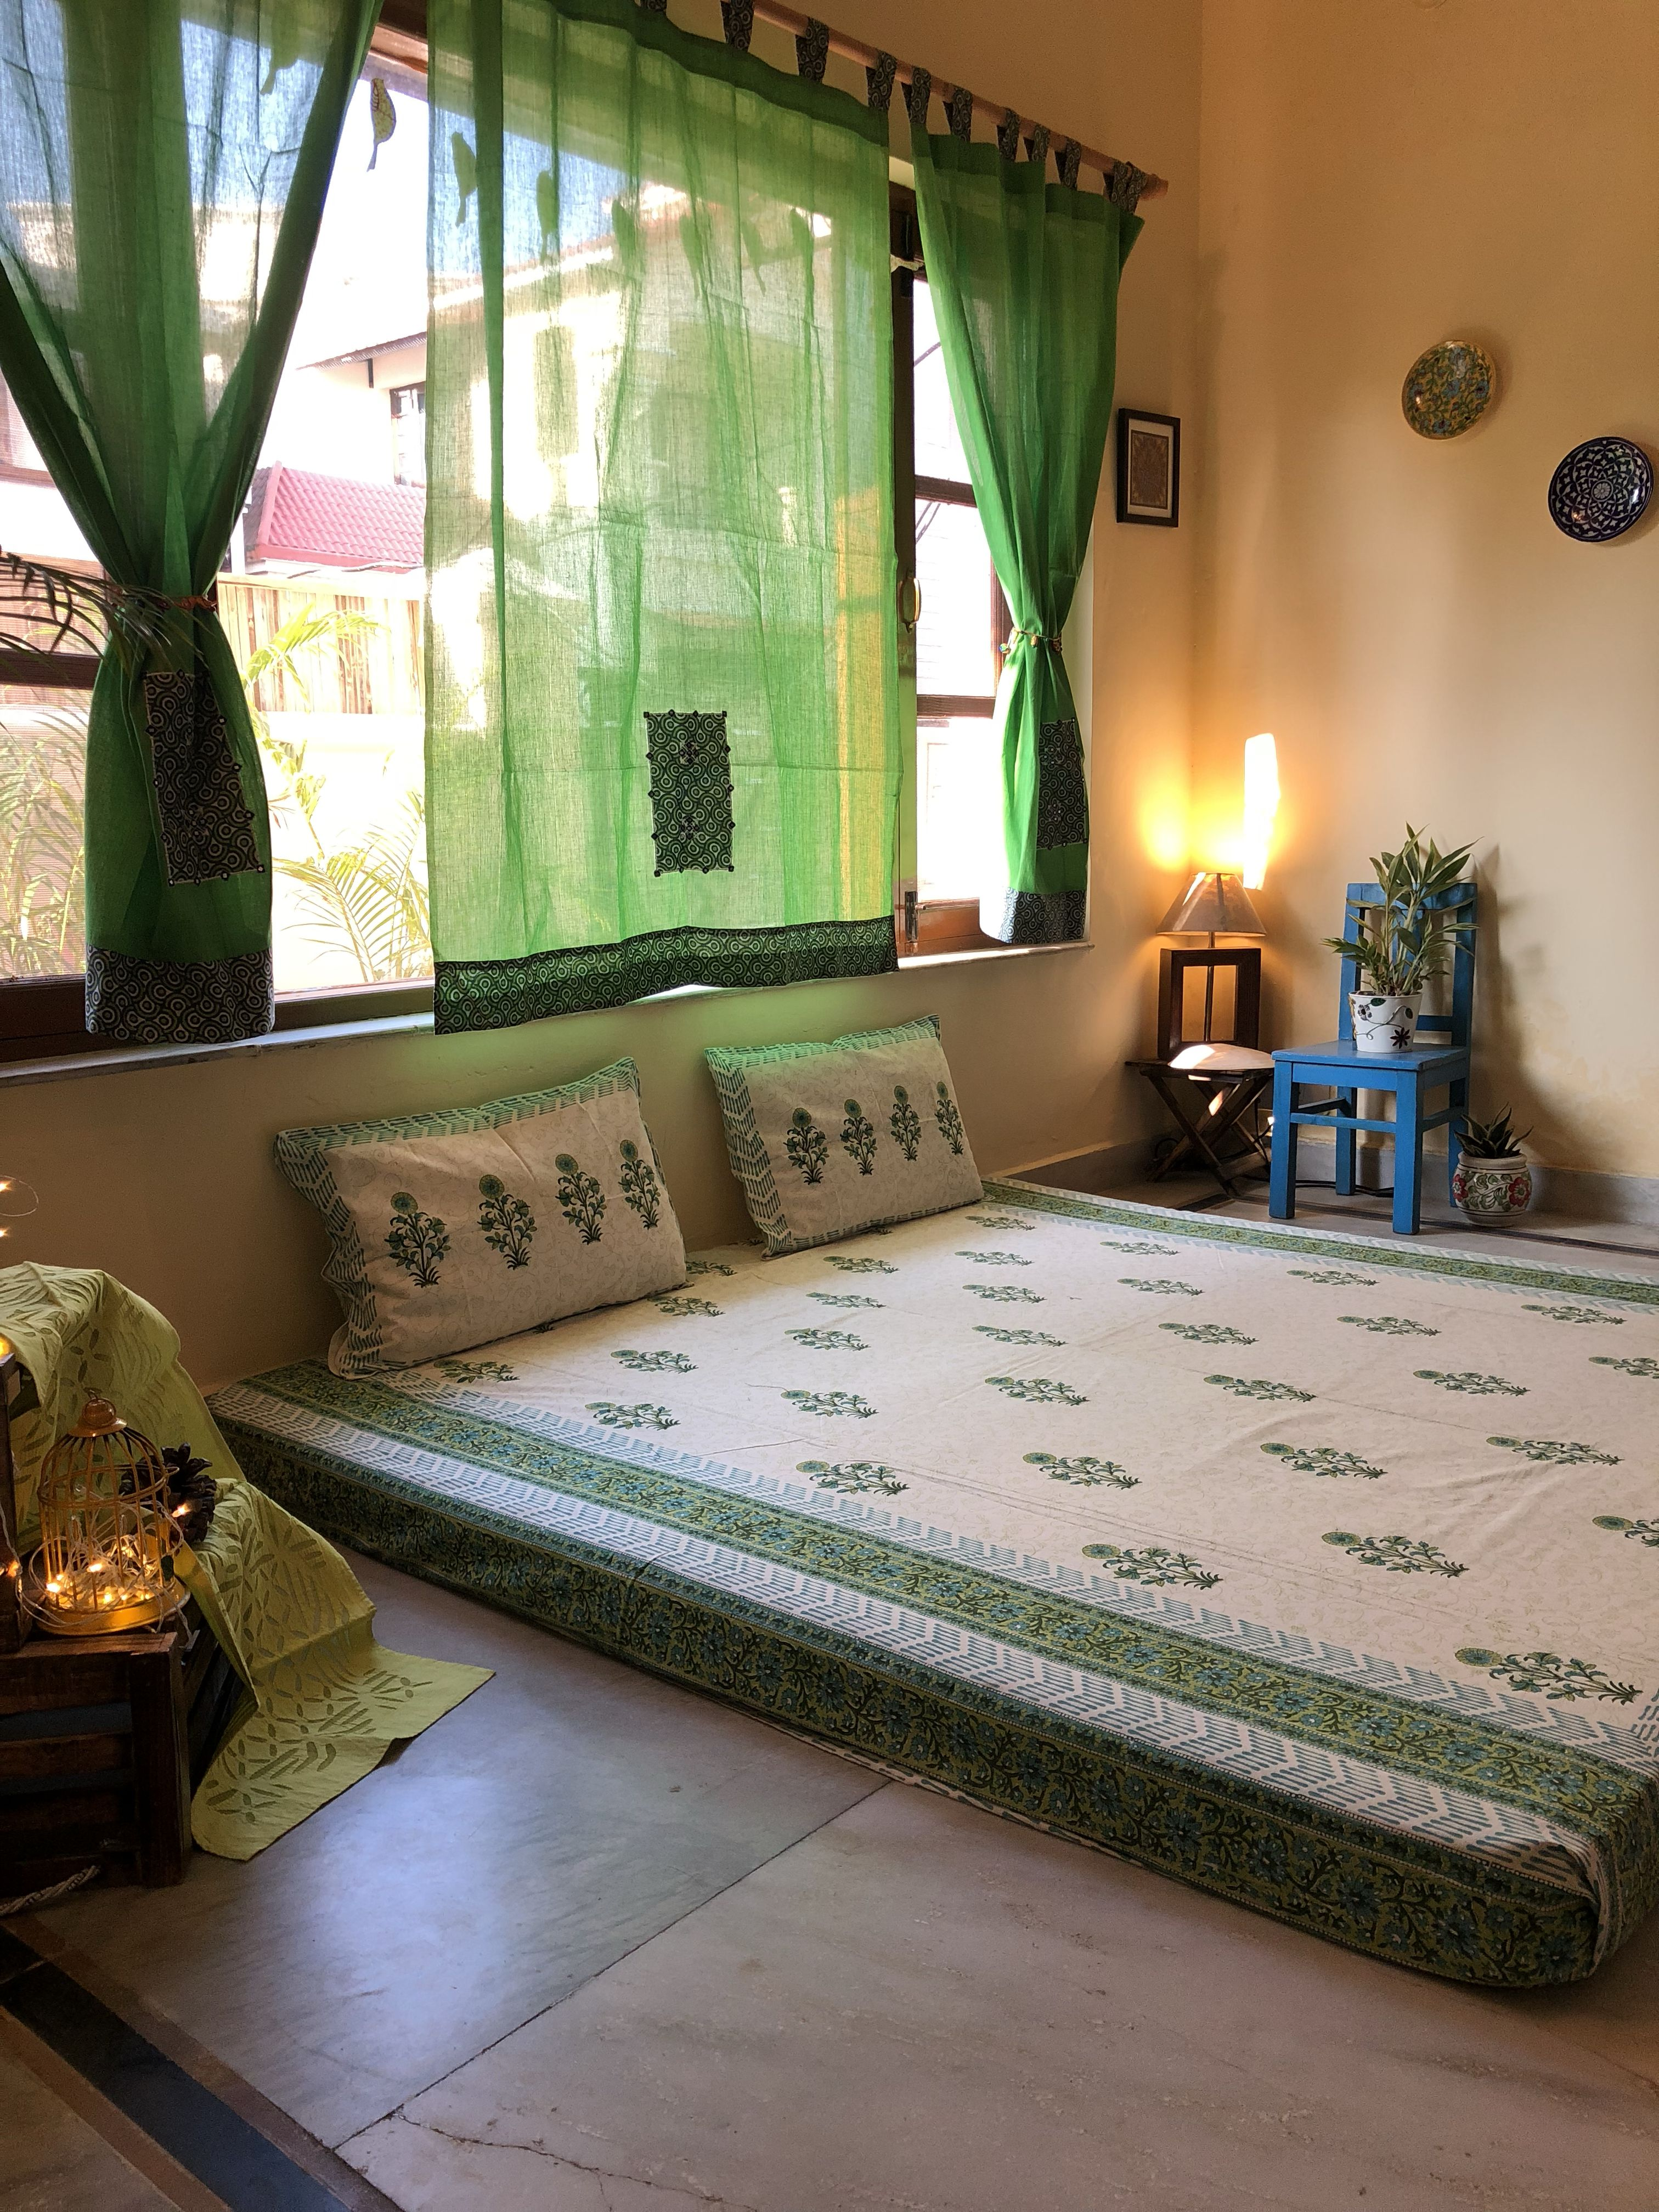 Pin by hathkargha on home in pinterest decor indian bedroom and also rh